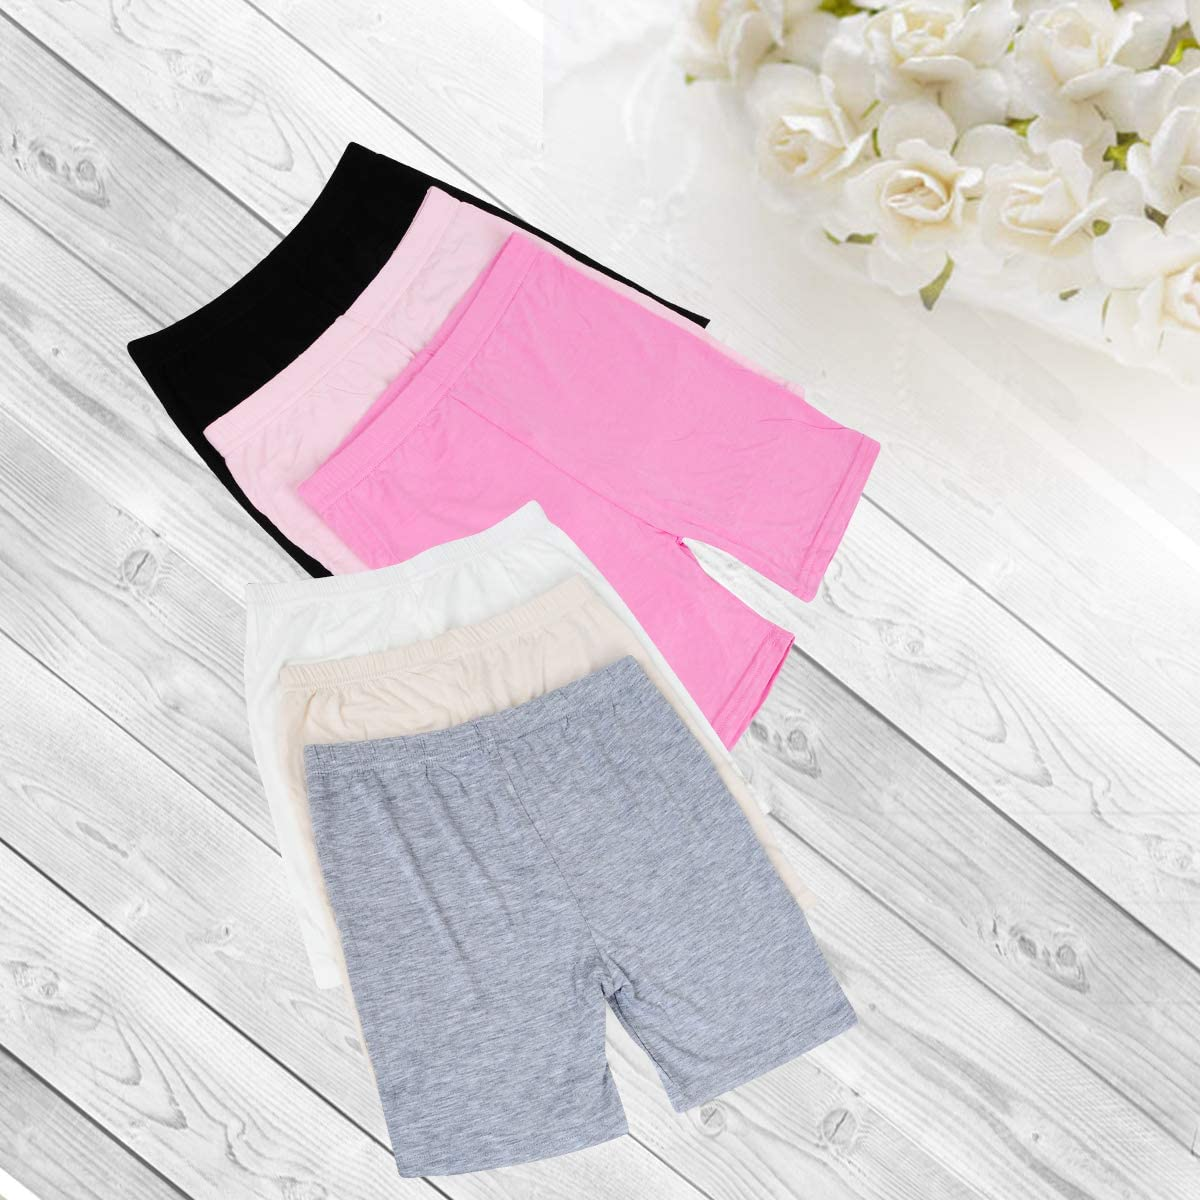 6 Pcs Girls Underwears,Zerototens 2-10 Years Old Toddler Kids Breathable and Safety Dress Girls Dance Shorts Safety Boxer Shorts Cotton Panties